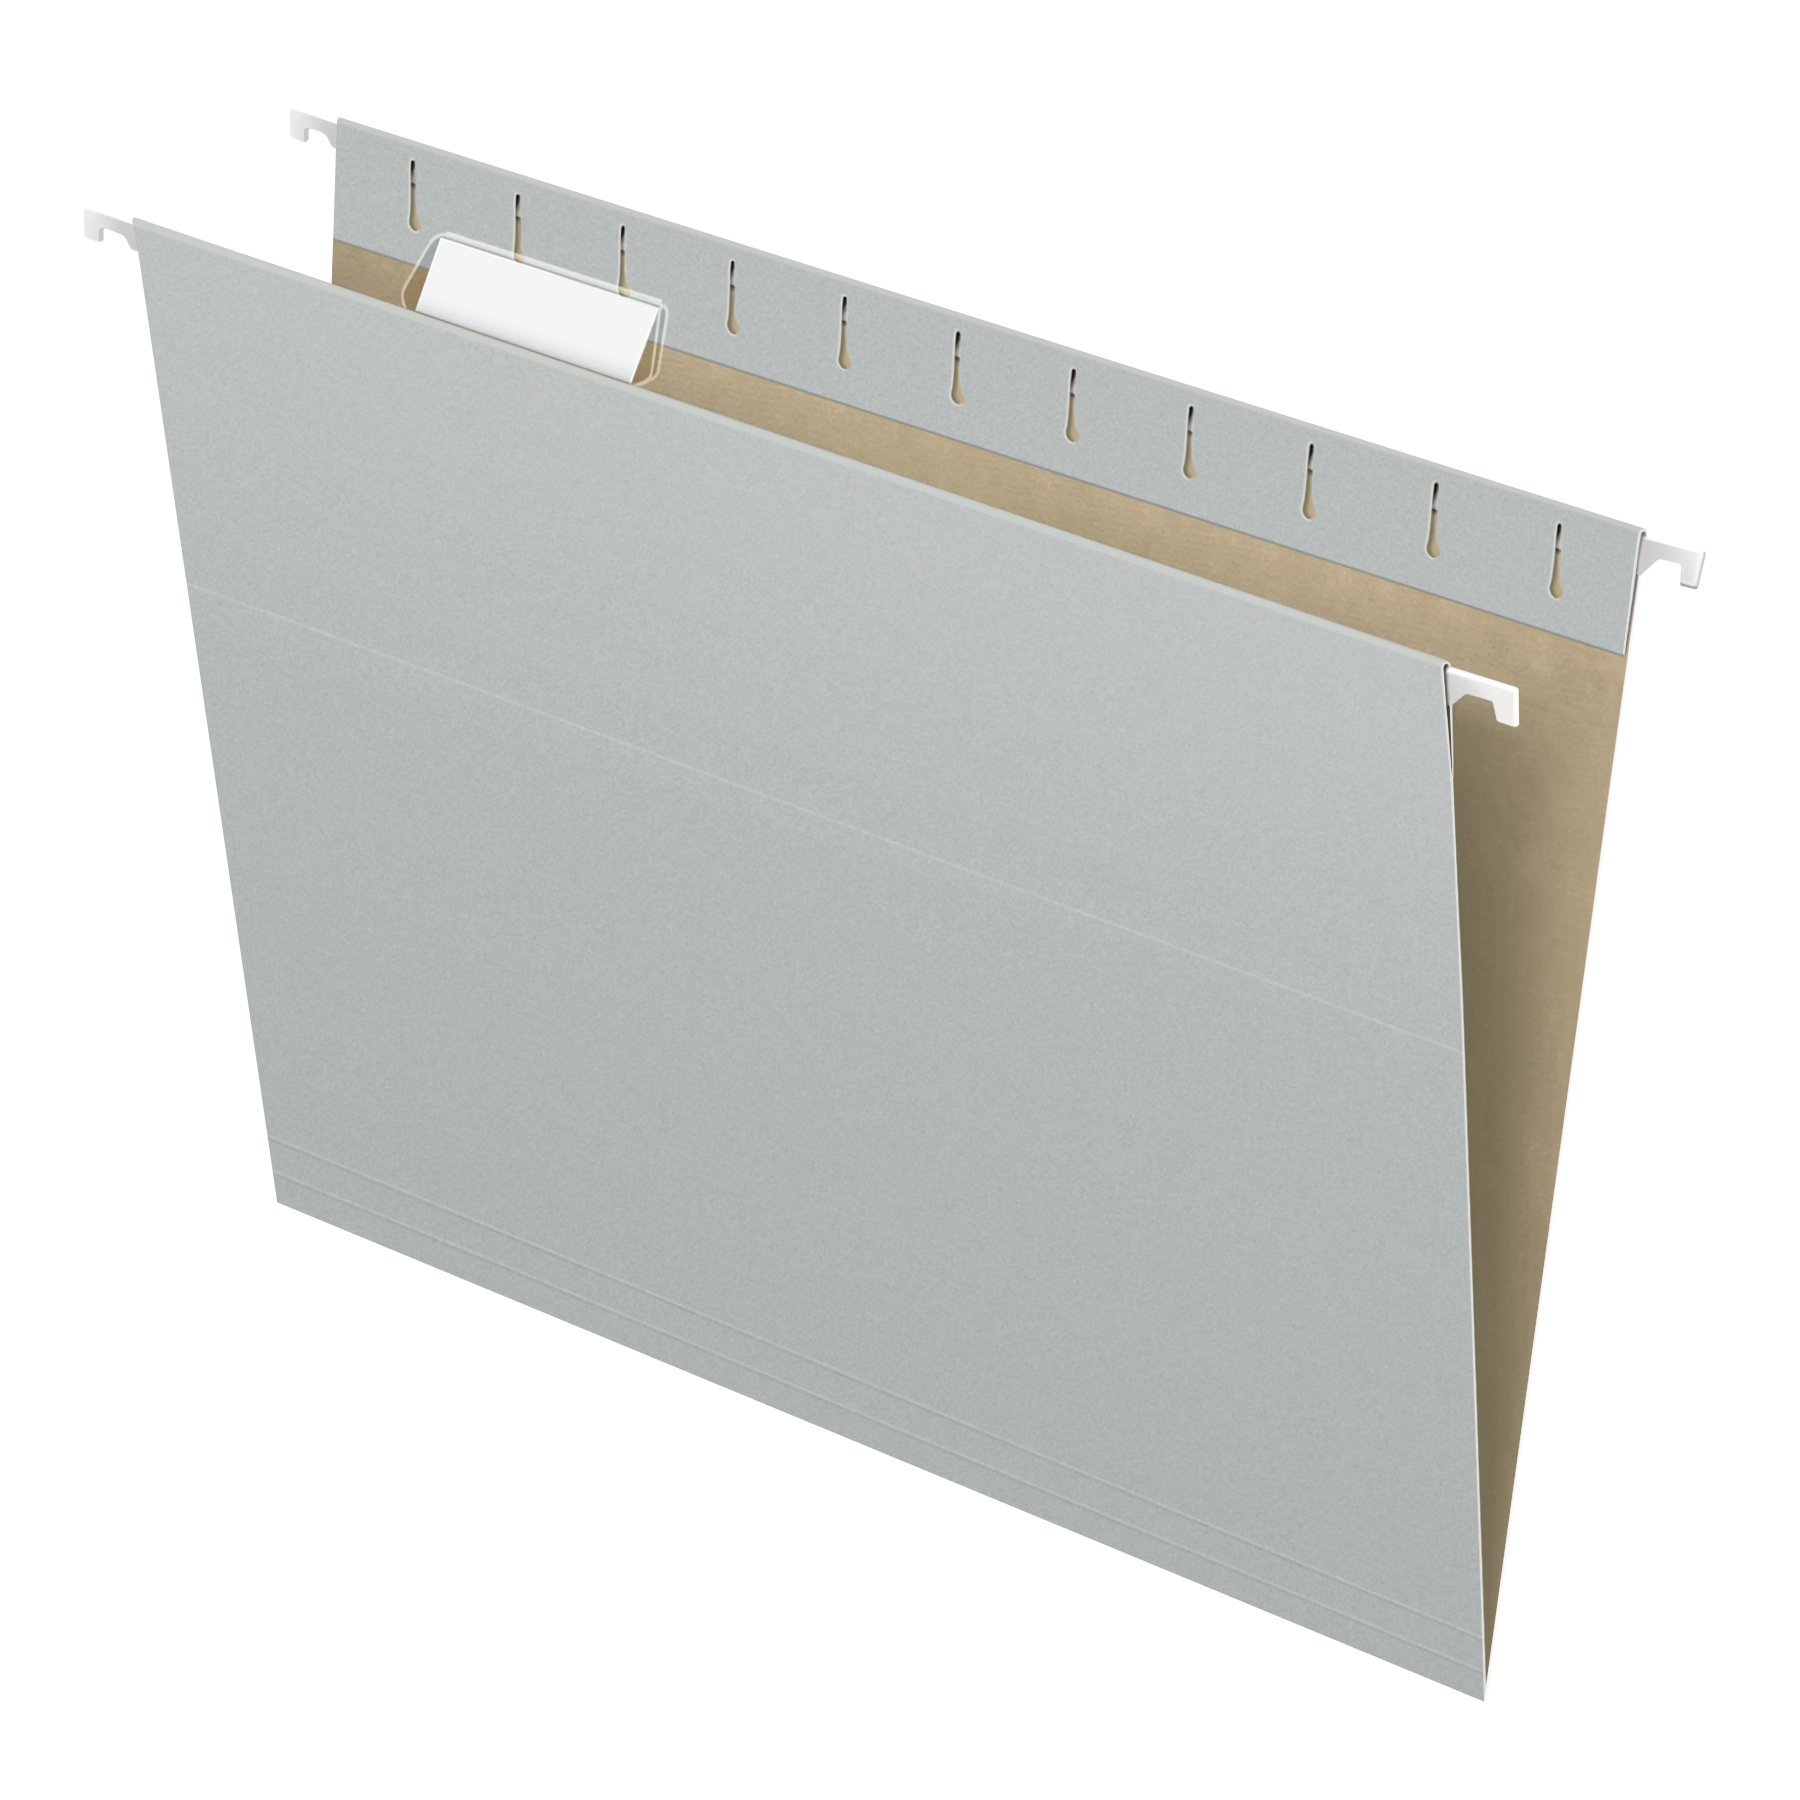 Pendaflex Recycled Hanging Folders, Letter Size, Gray, 1/5 Cut, 25/BX (81604) by Pendaflex